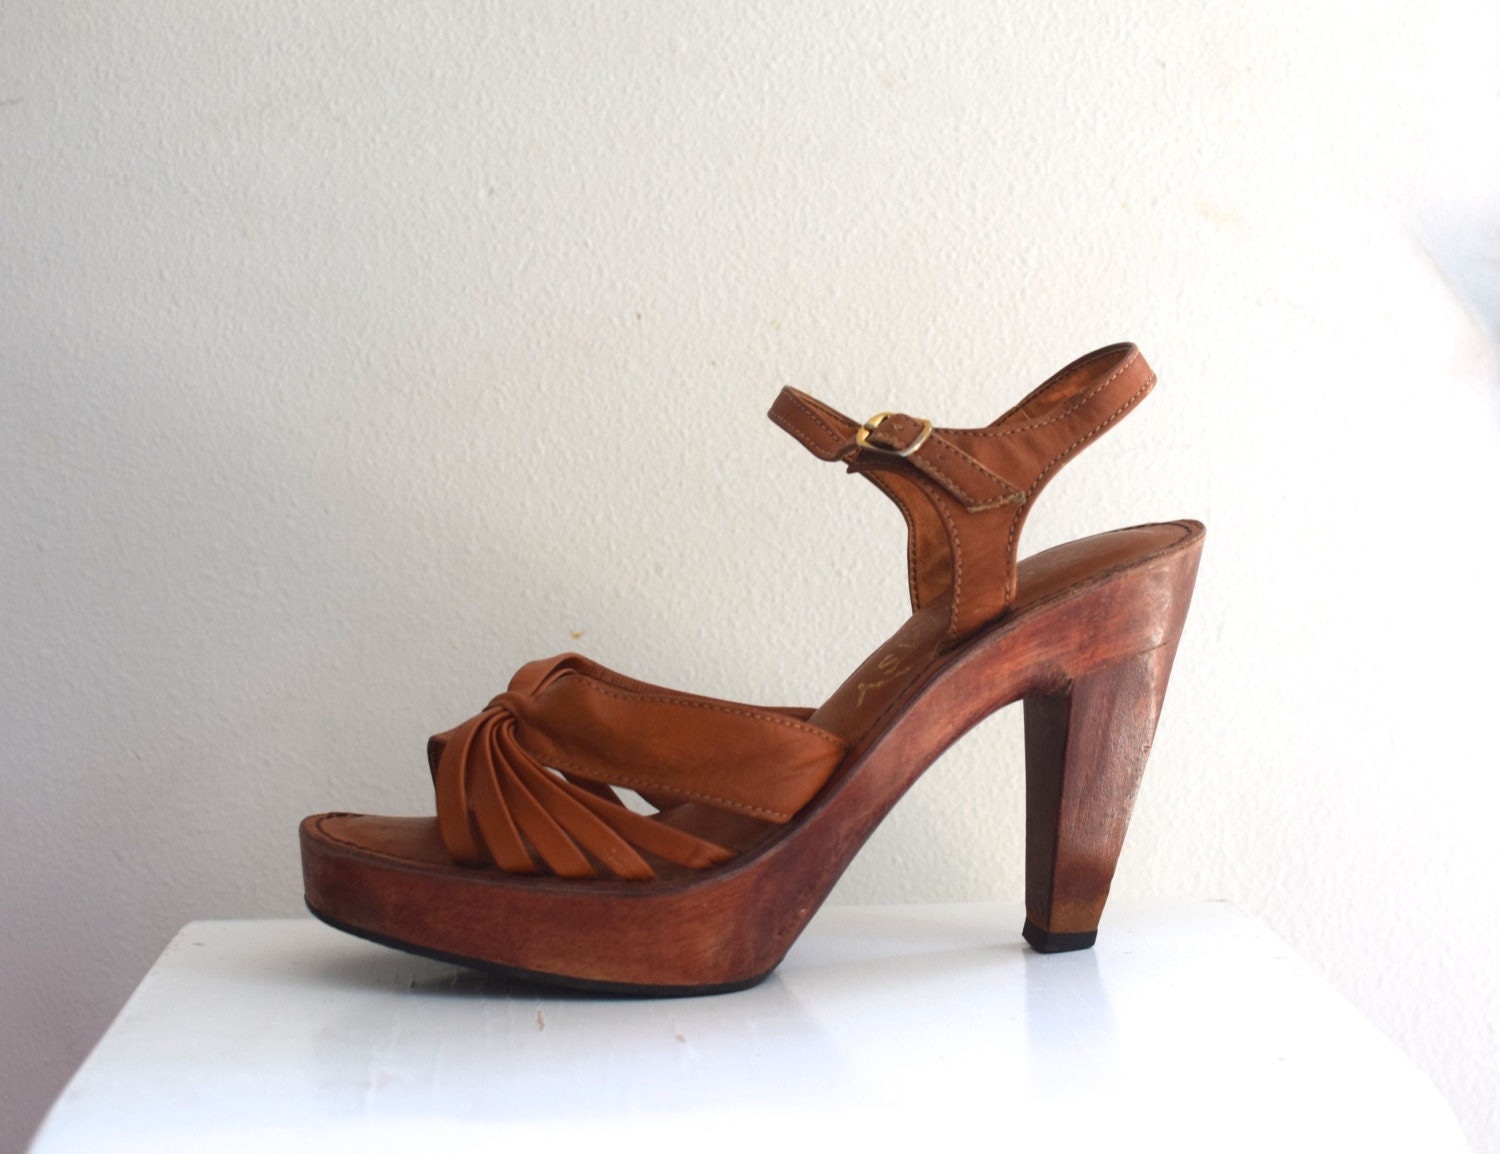 70s platform sandals disco wooden shoes whiskey leather